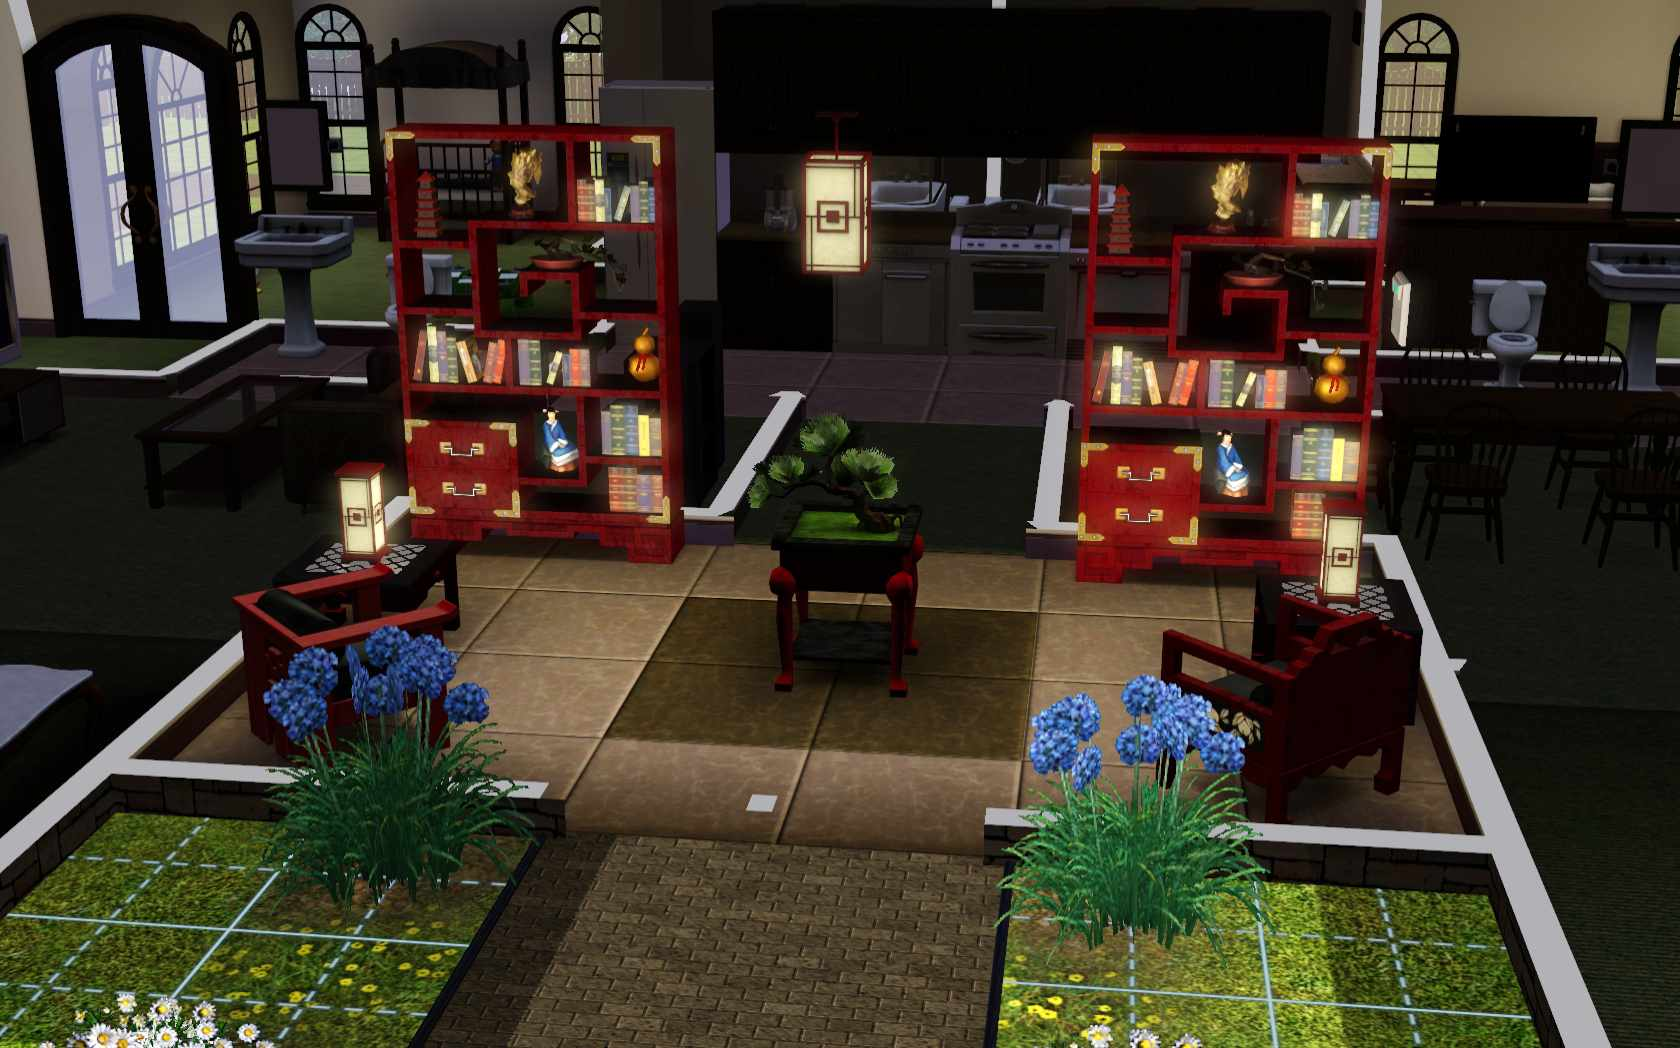 Merveilleux The Sims 3 Home Building And Design